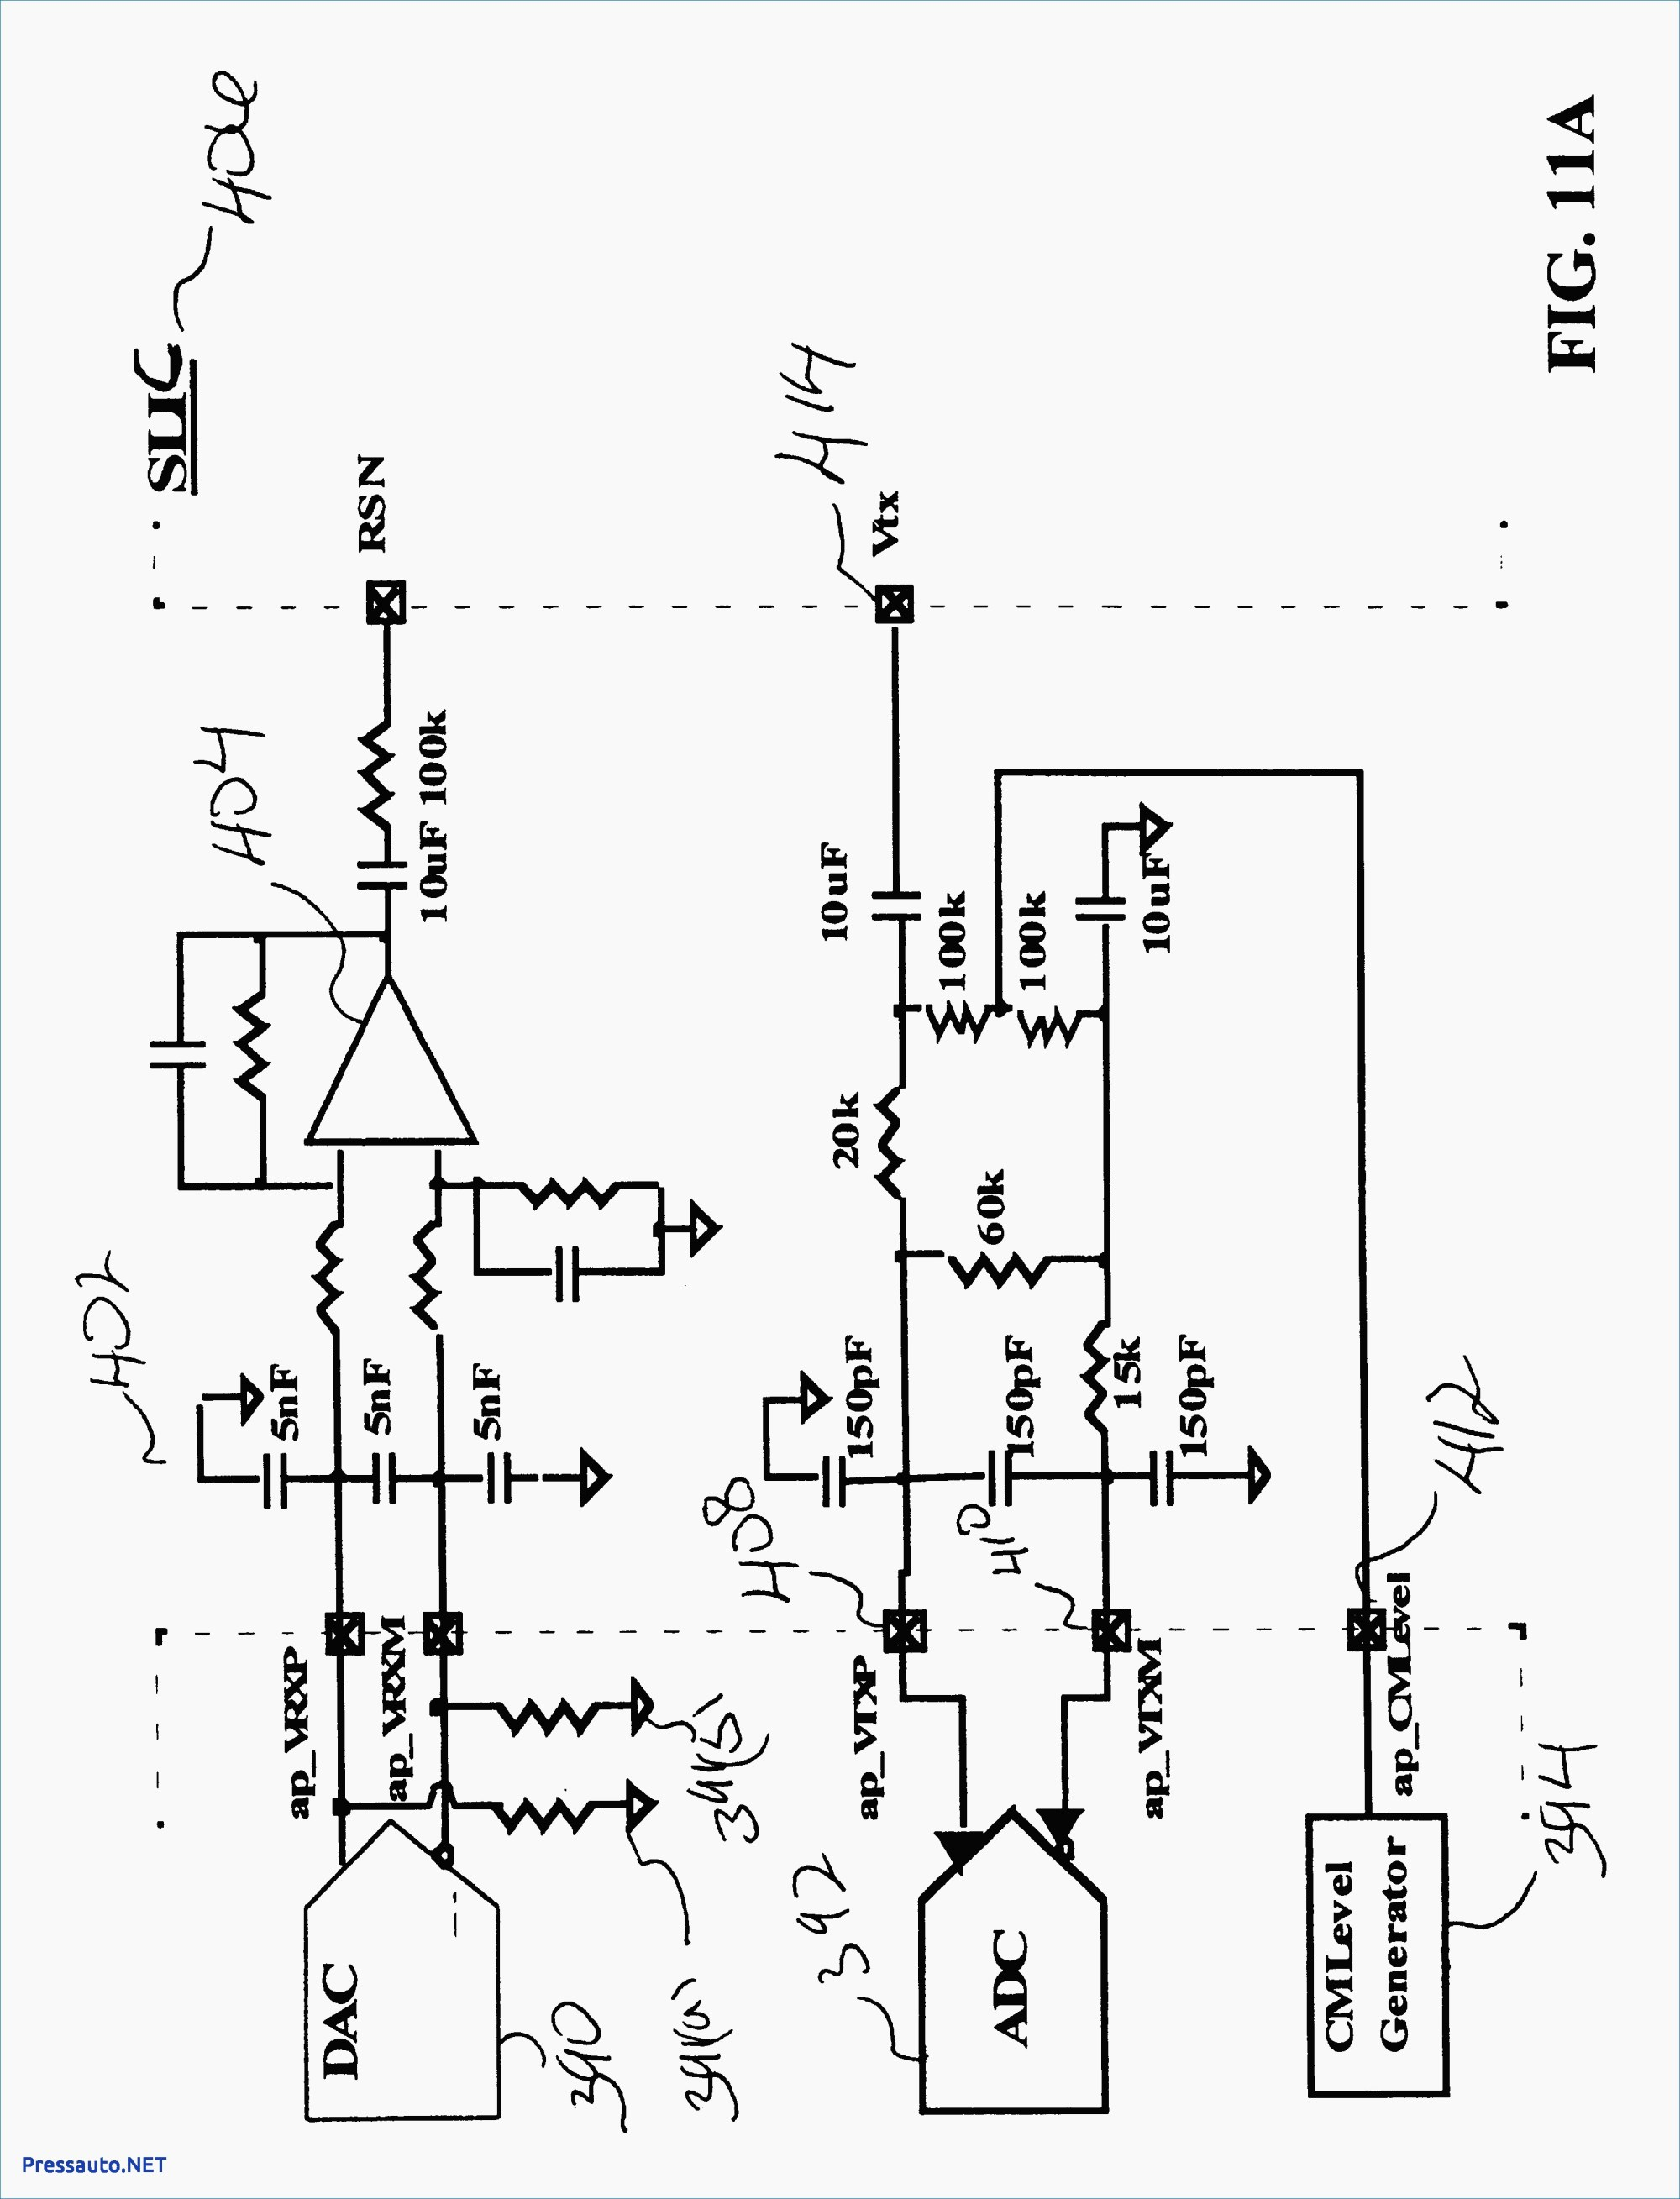 hight resolution of wiring acme diagram industrial control transformer wiring diagram acme open delta wiring diagram